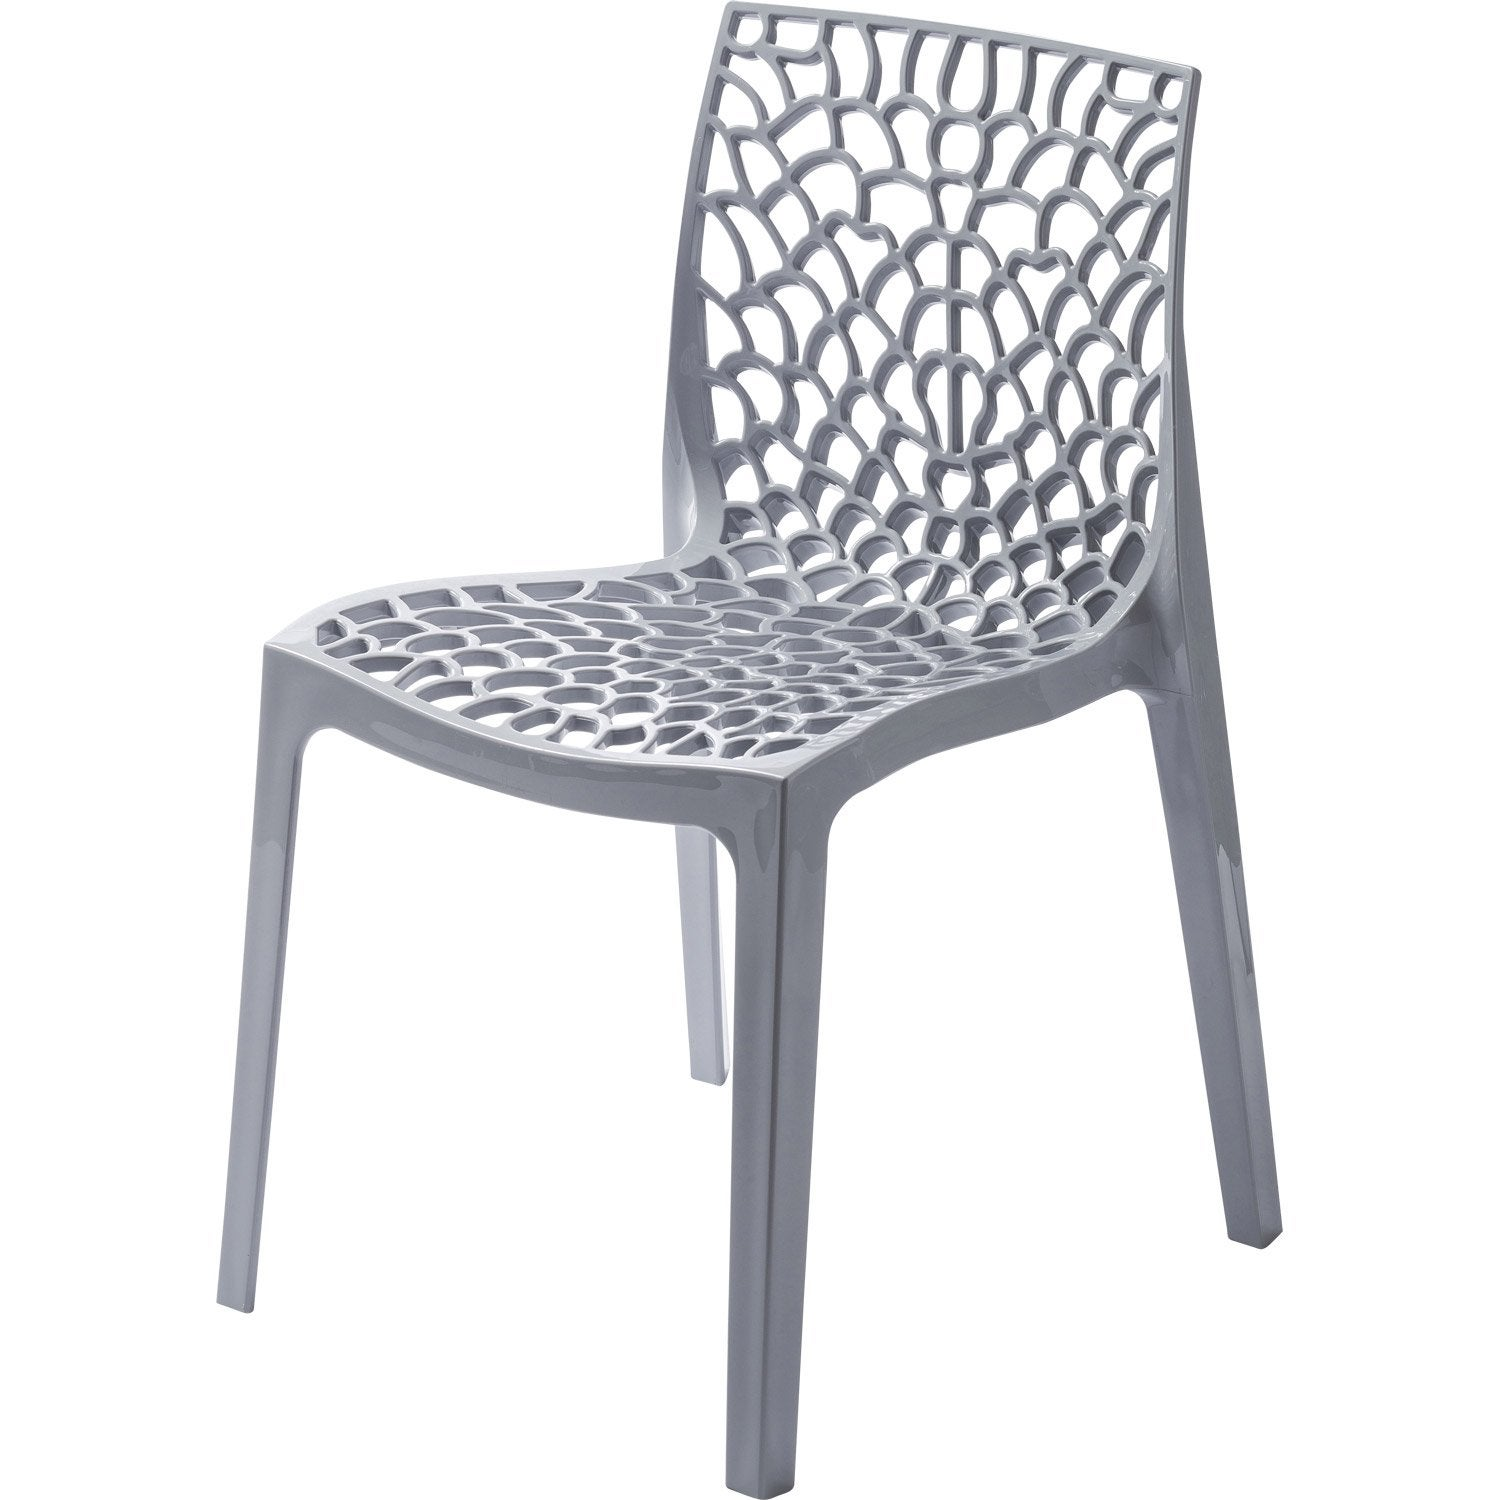 Chaise de jardin en r sine grafik gris perle leroy merlin for Chaise longue leroy merlin